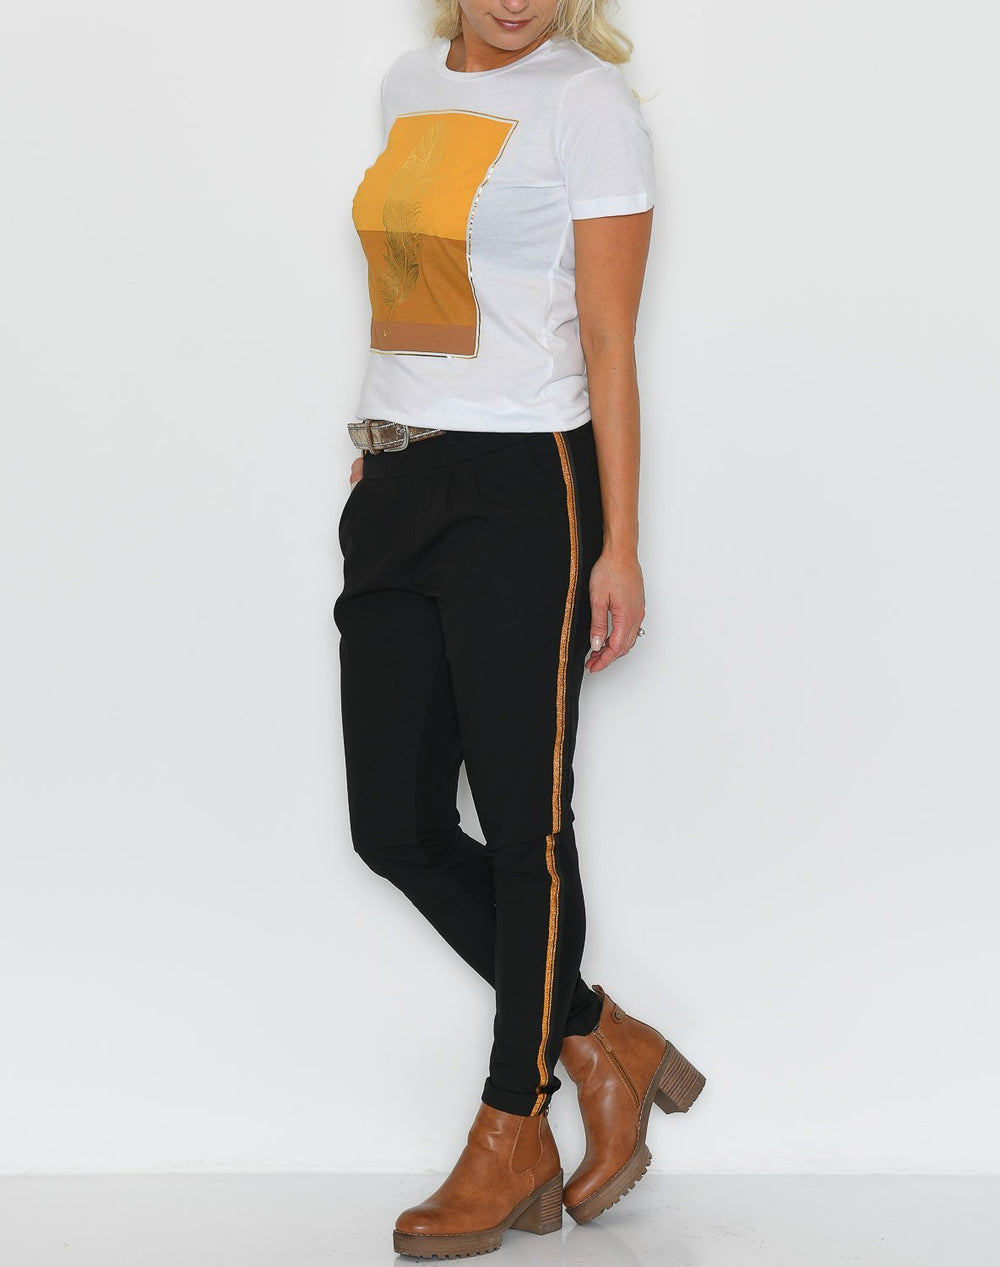 Kaffe KAcopper Jillian pants black deep - Online-Mode